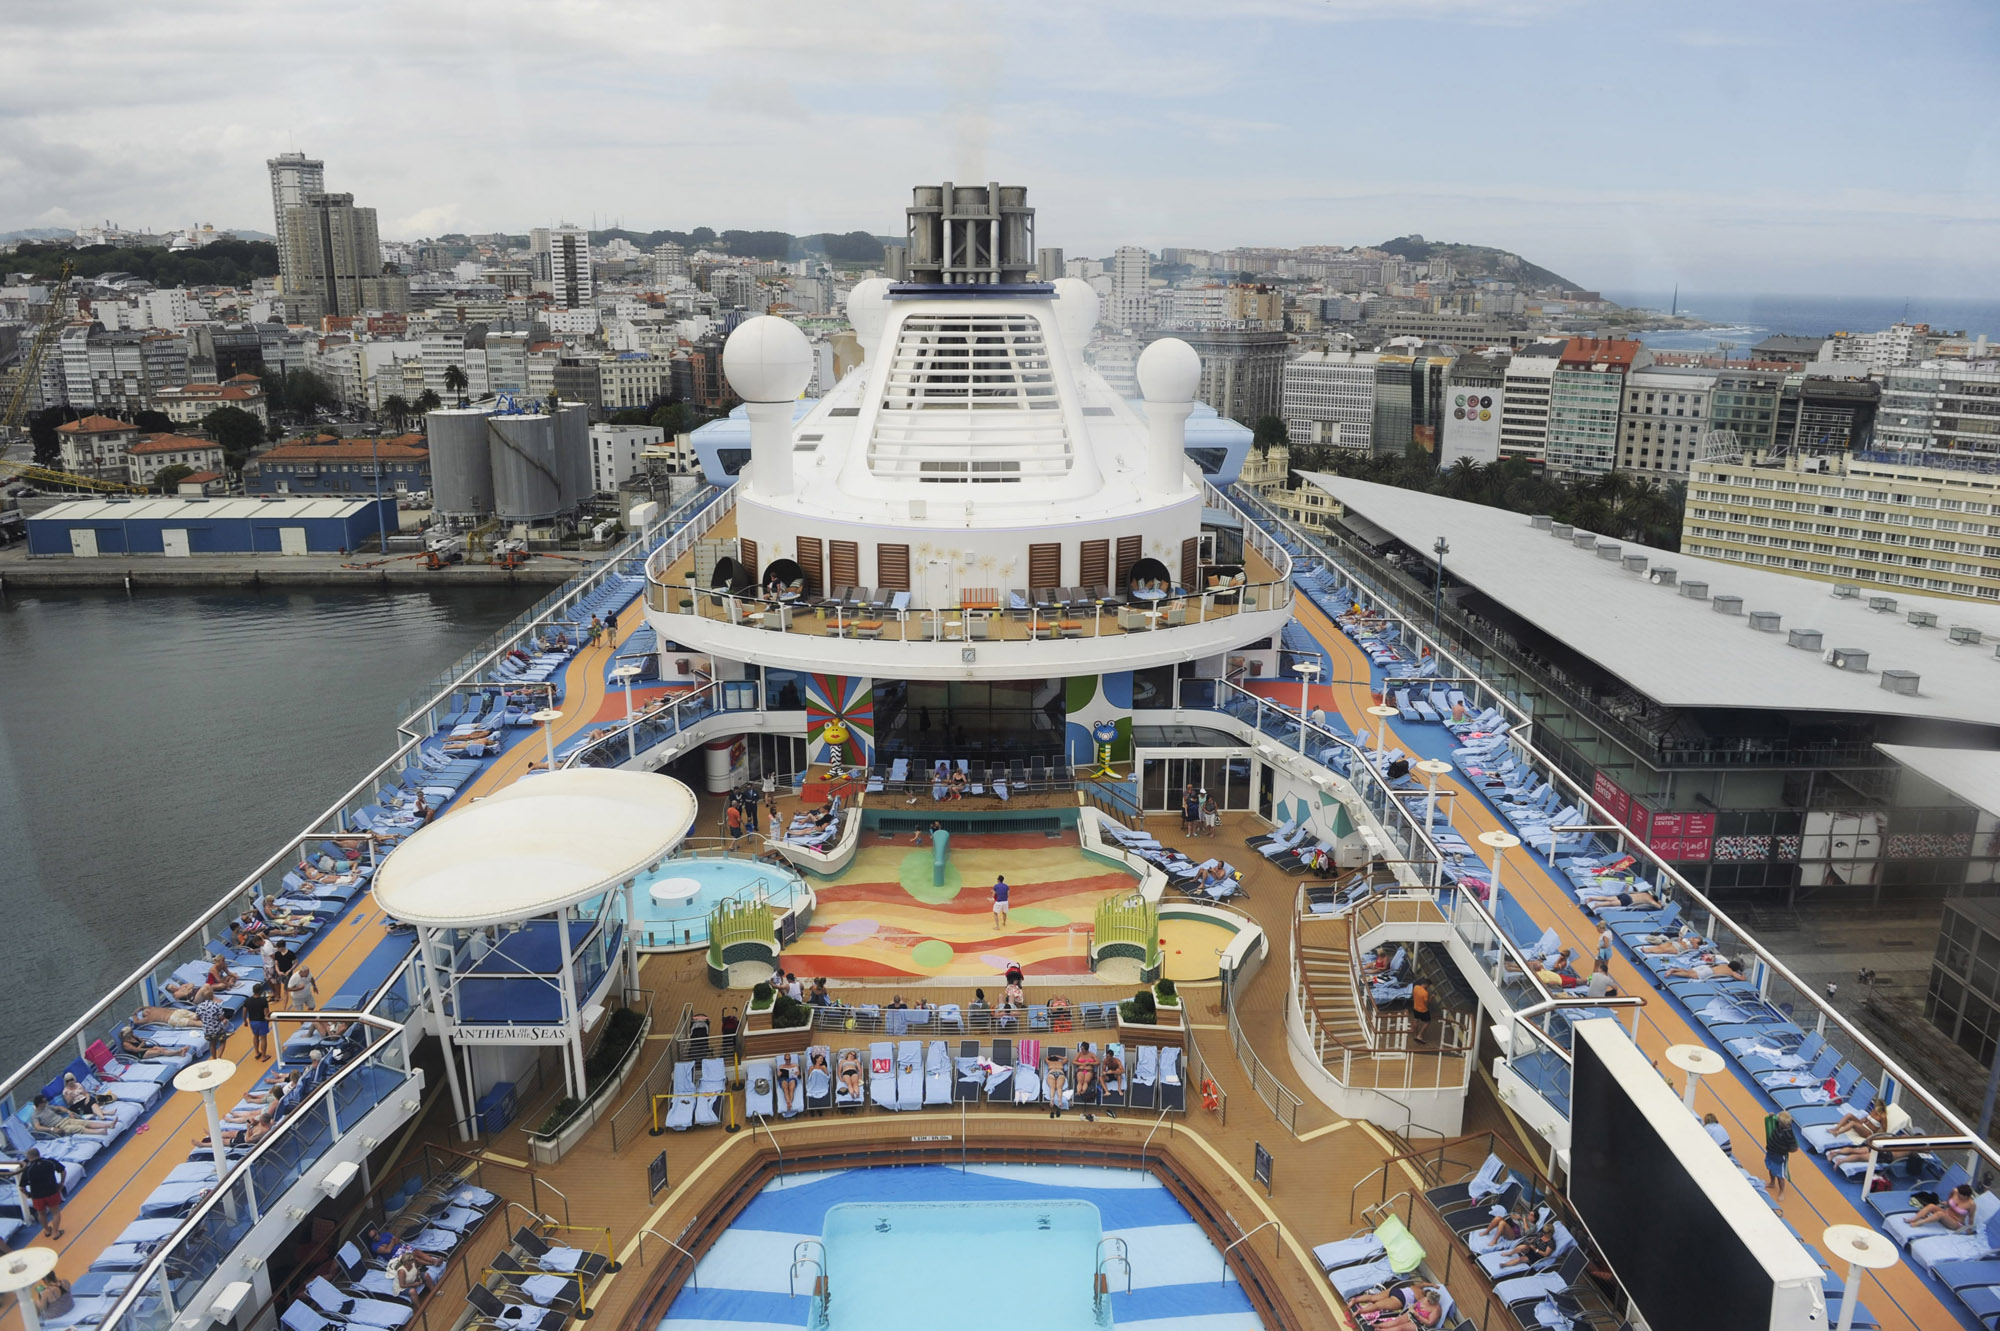 "Vista panorámica desde la cápsula ""North Star"" del crucero Anthem of the Seas. Junio 2015"